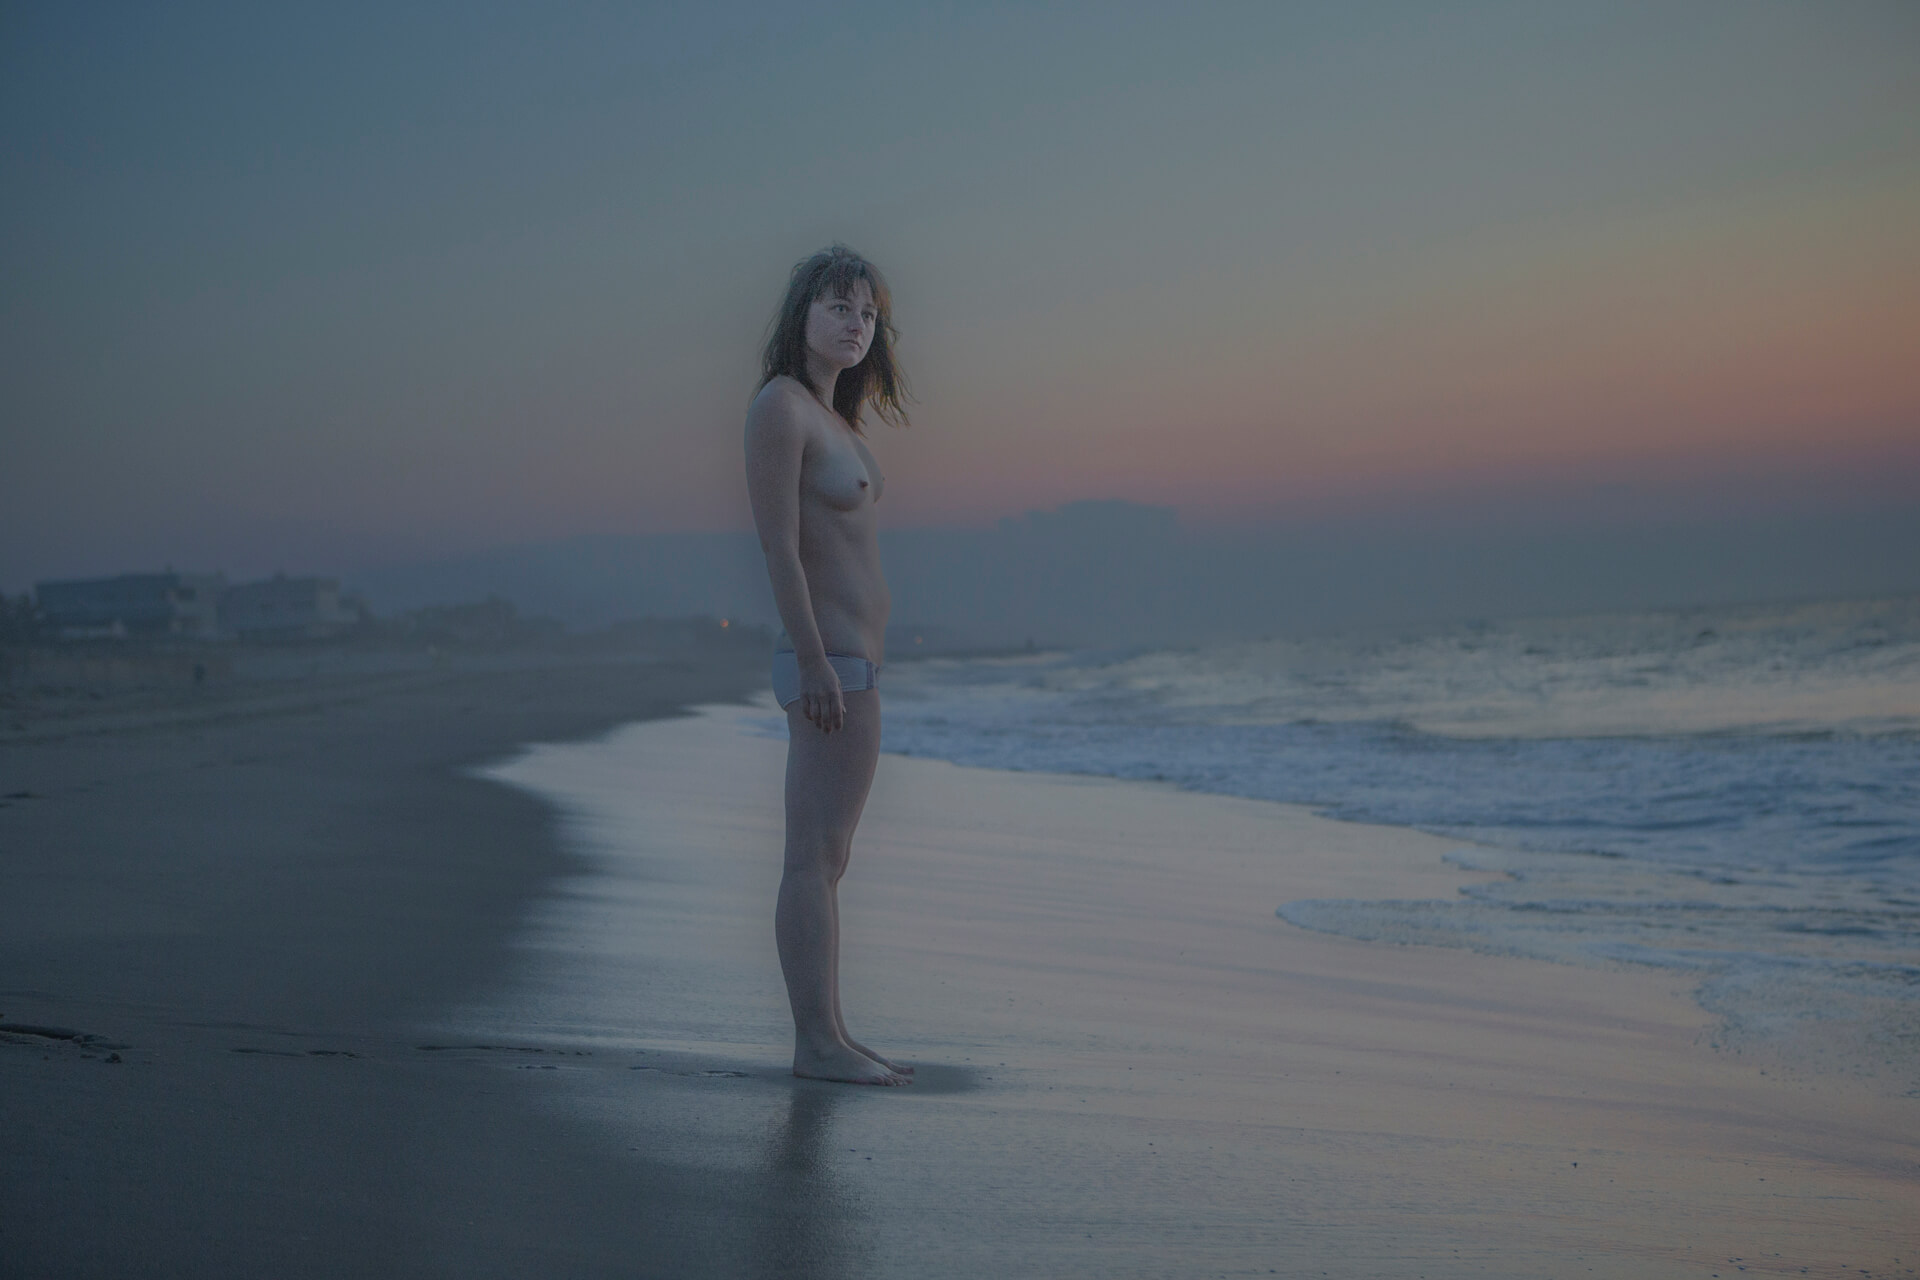 Matthew Swarts, Beth, Long Beach Island, New Jersey, 2012